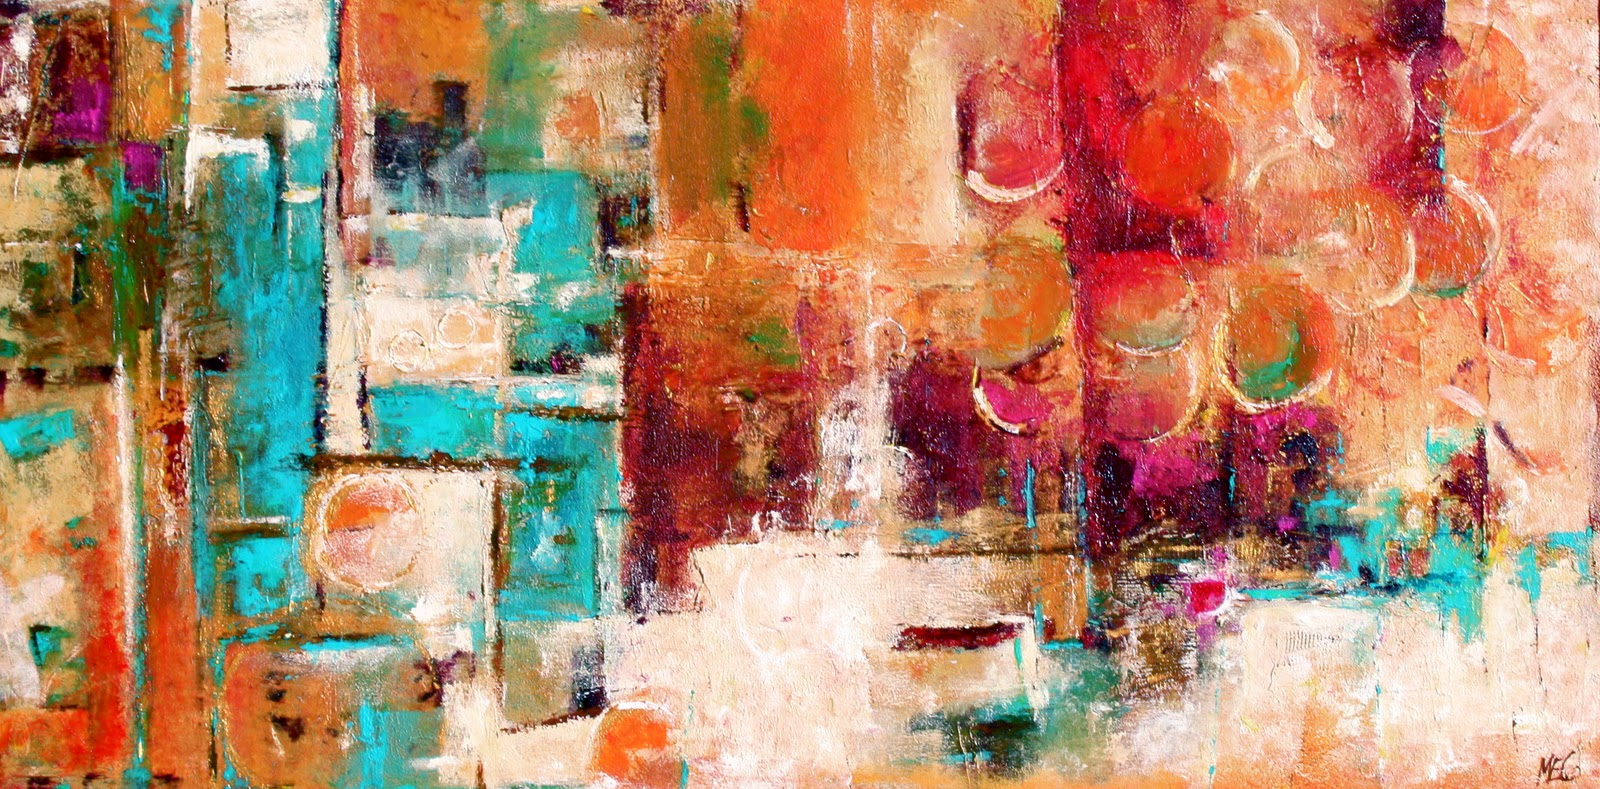 Daily painters abstract gallery auteur modern art for Abstract mural art